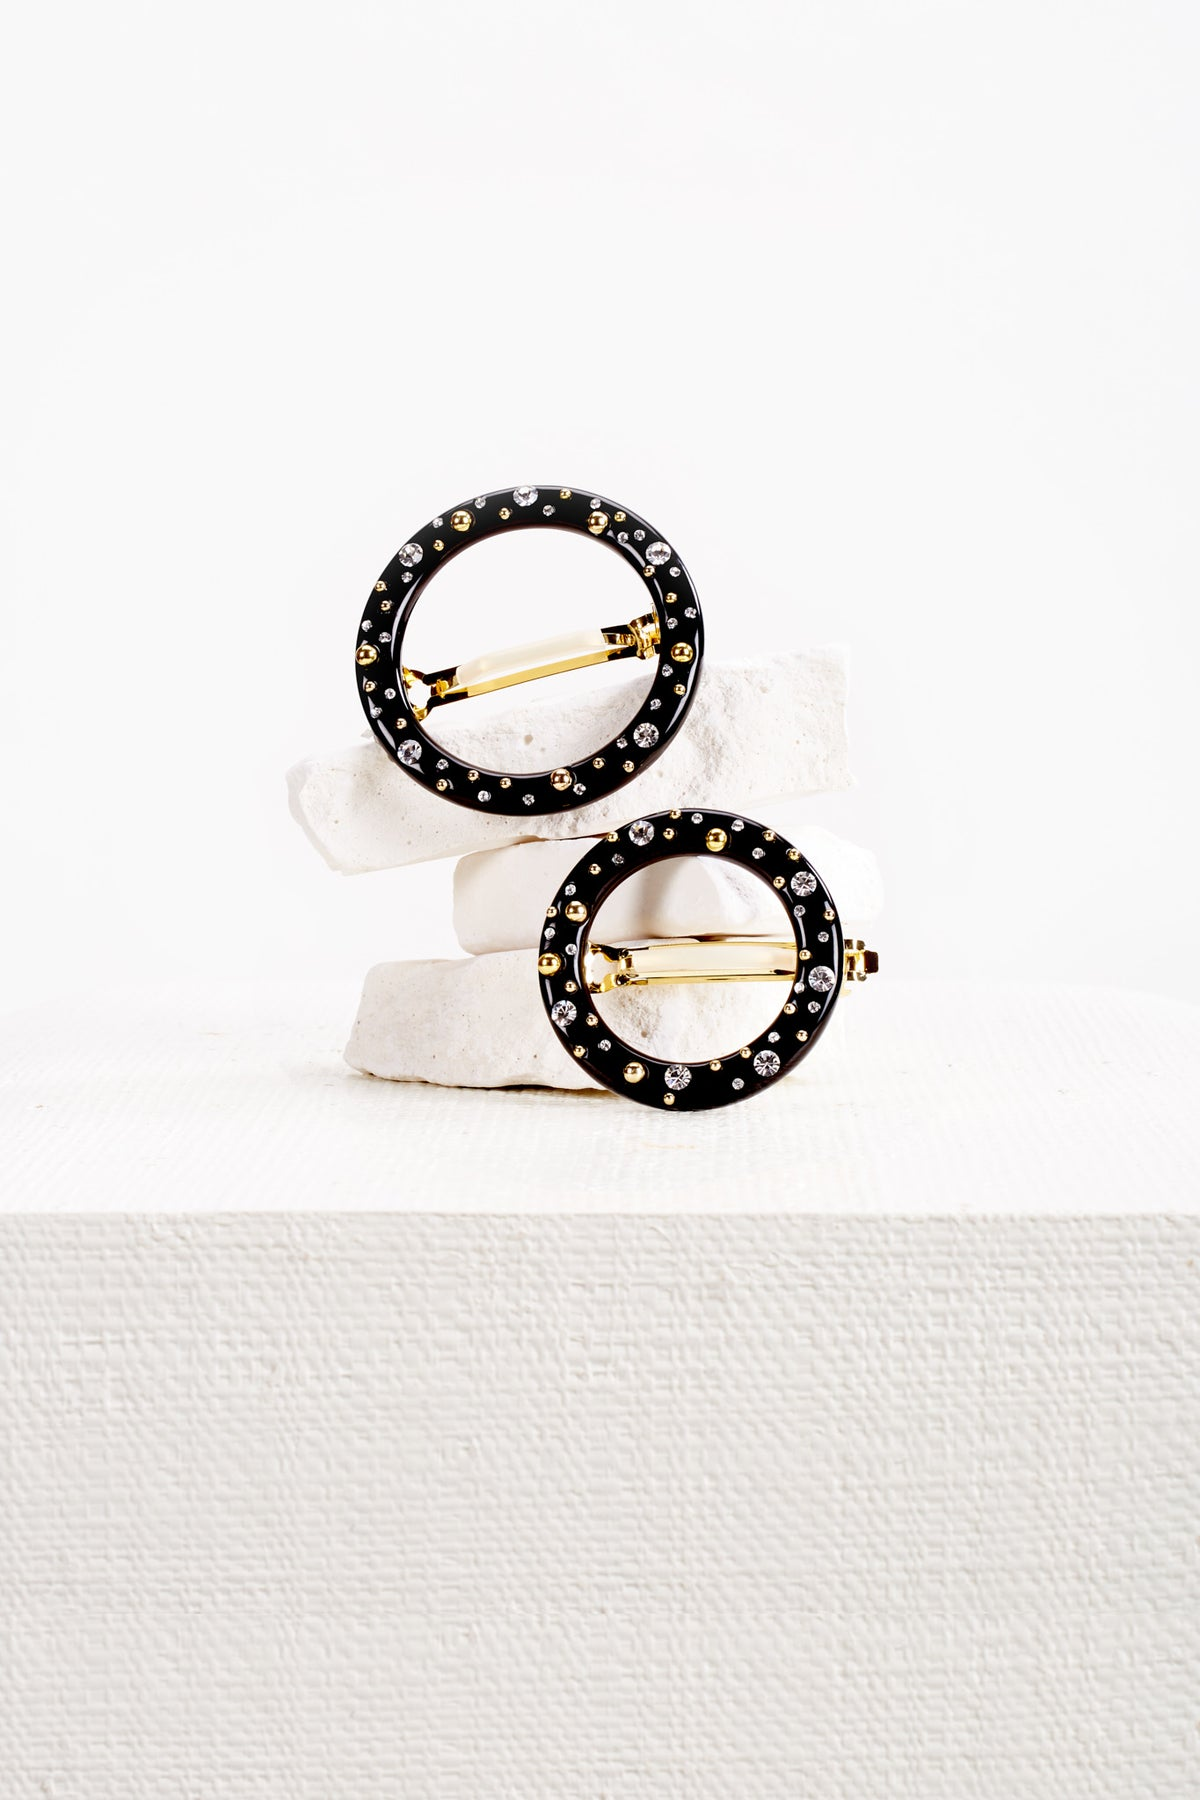 Ria Studded Barrette - Black